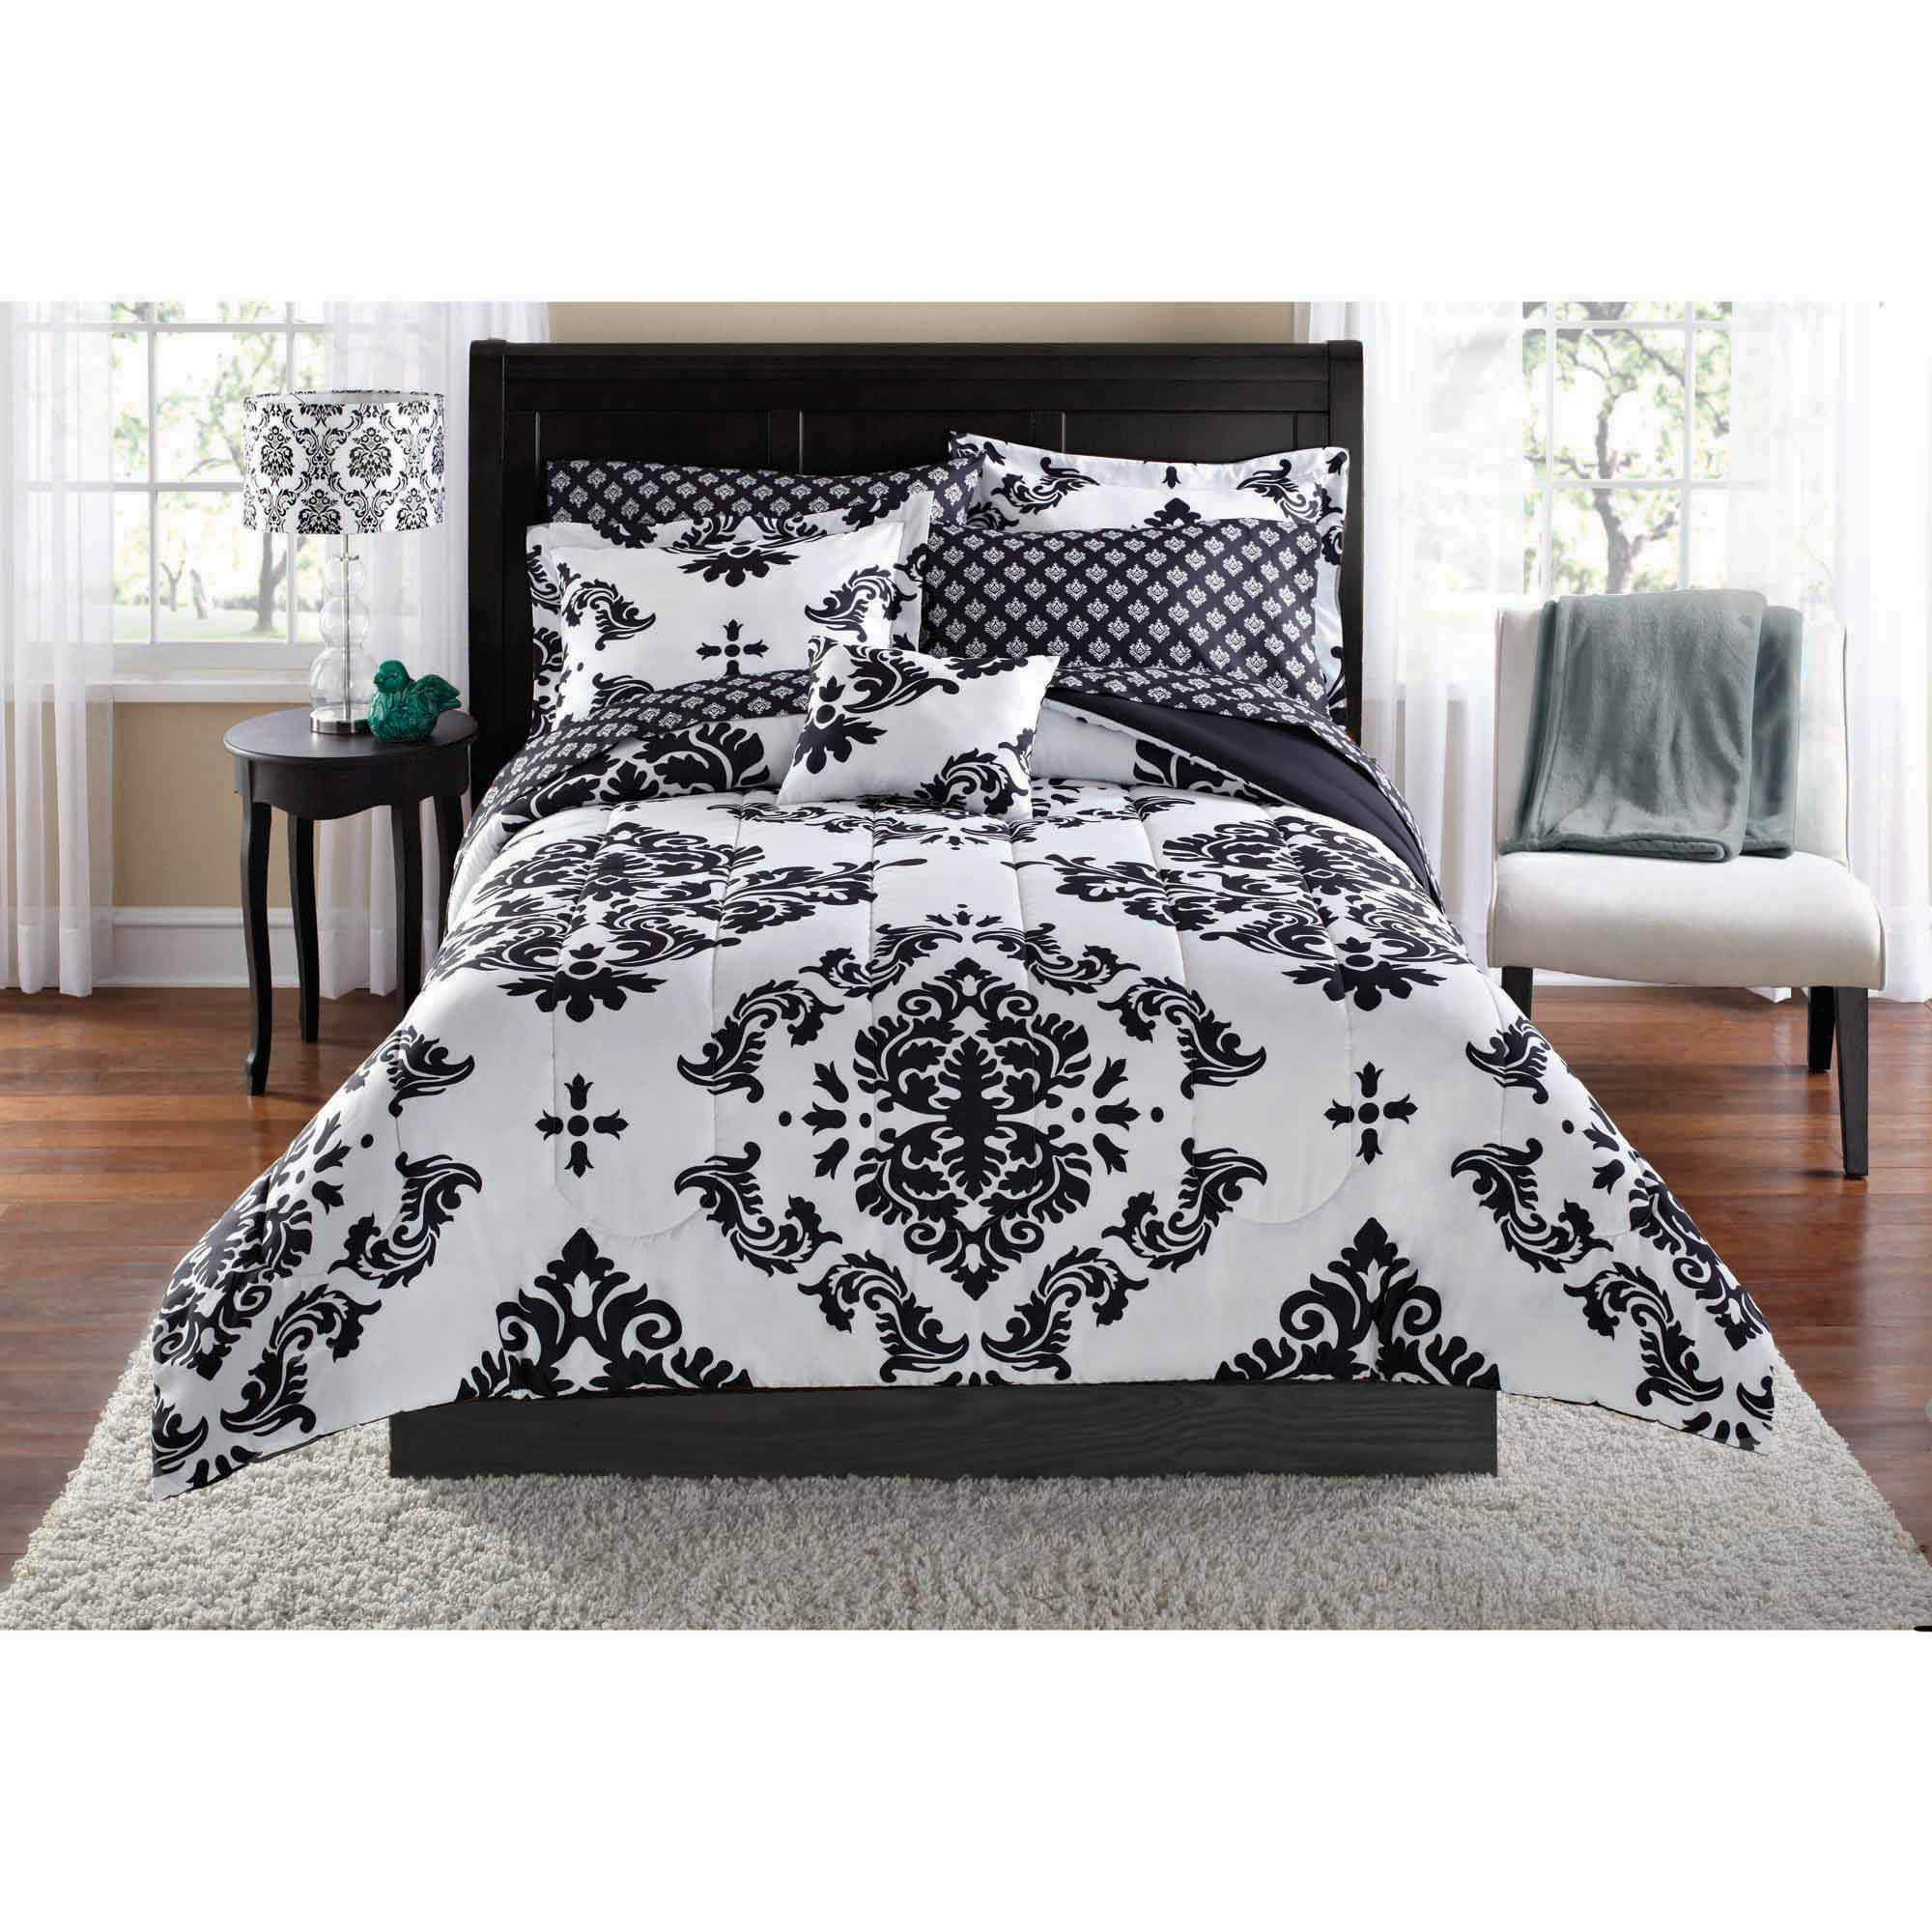 xl coordinated bag walmart set in com twin bed size a comforter ip mainstays orkasi bedding